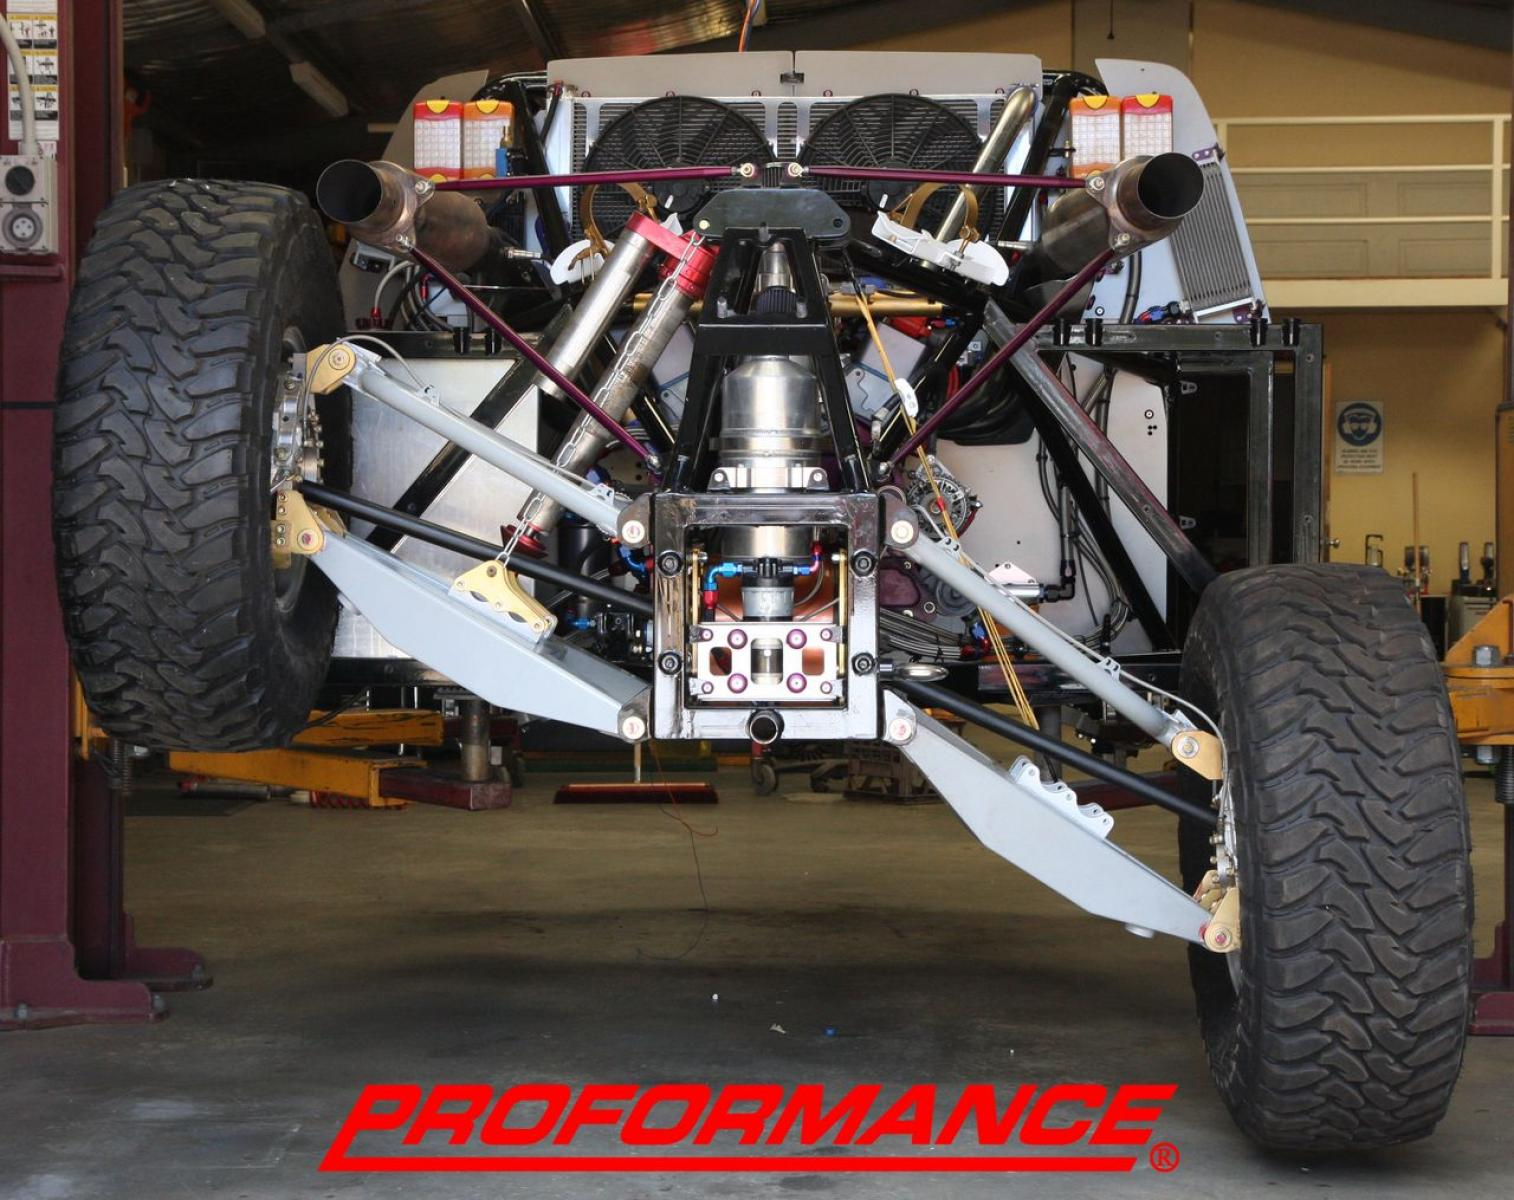 4X4 Desert Racing Truck - Nascar Engine - IFS - IRS - 3